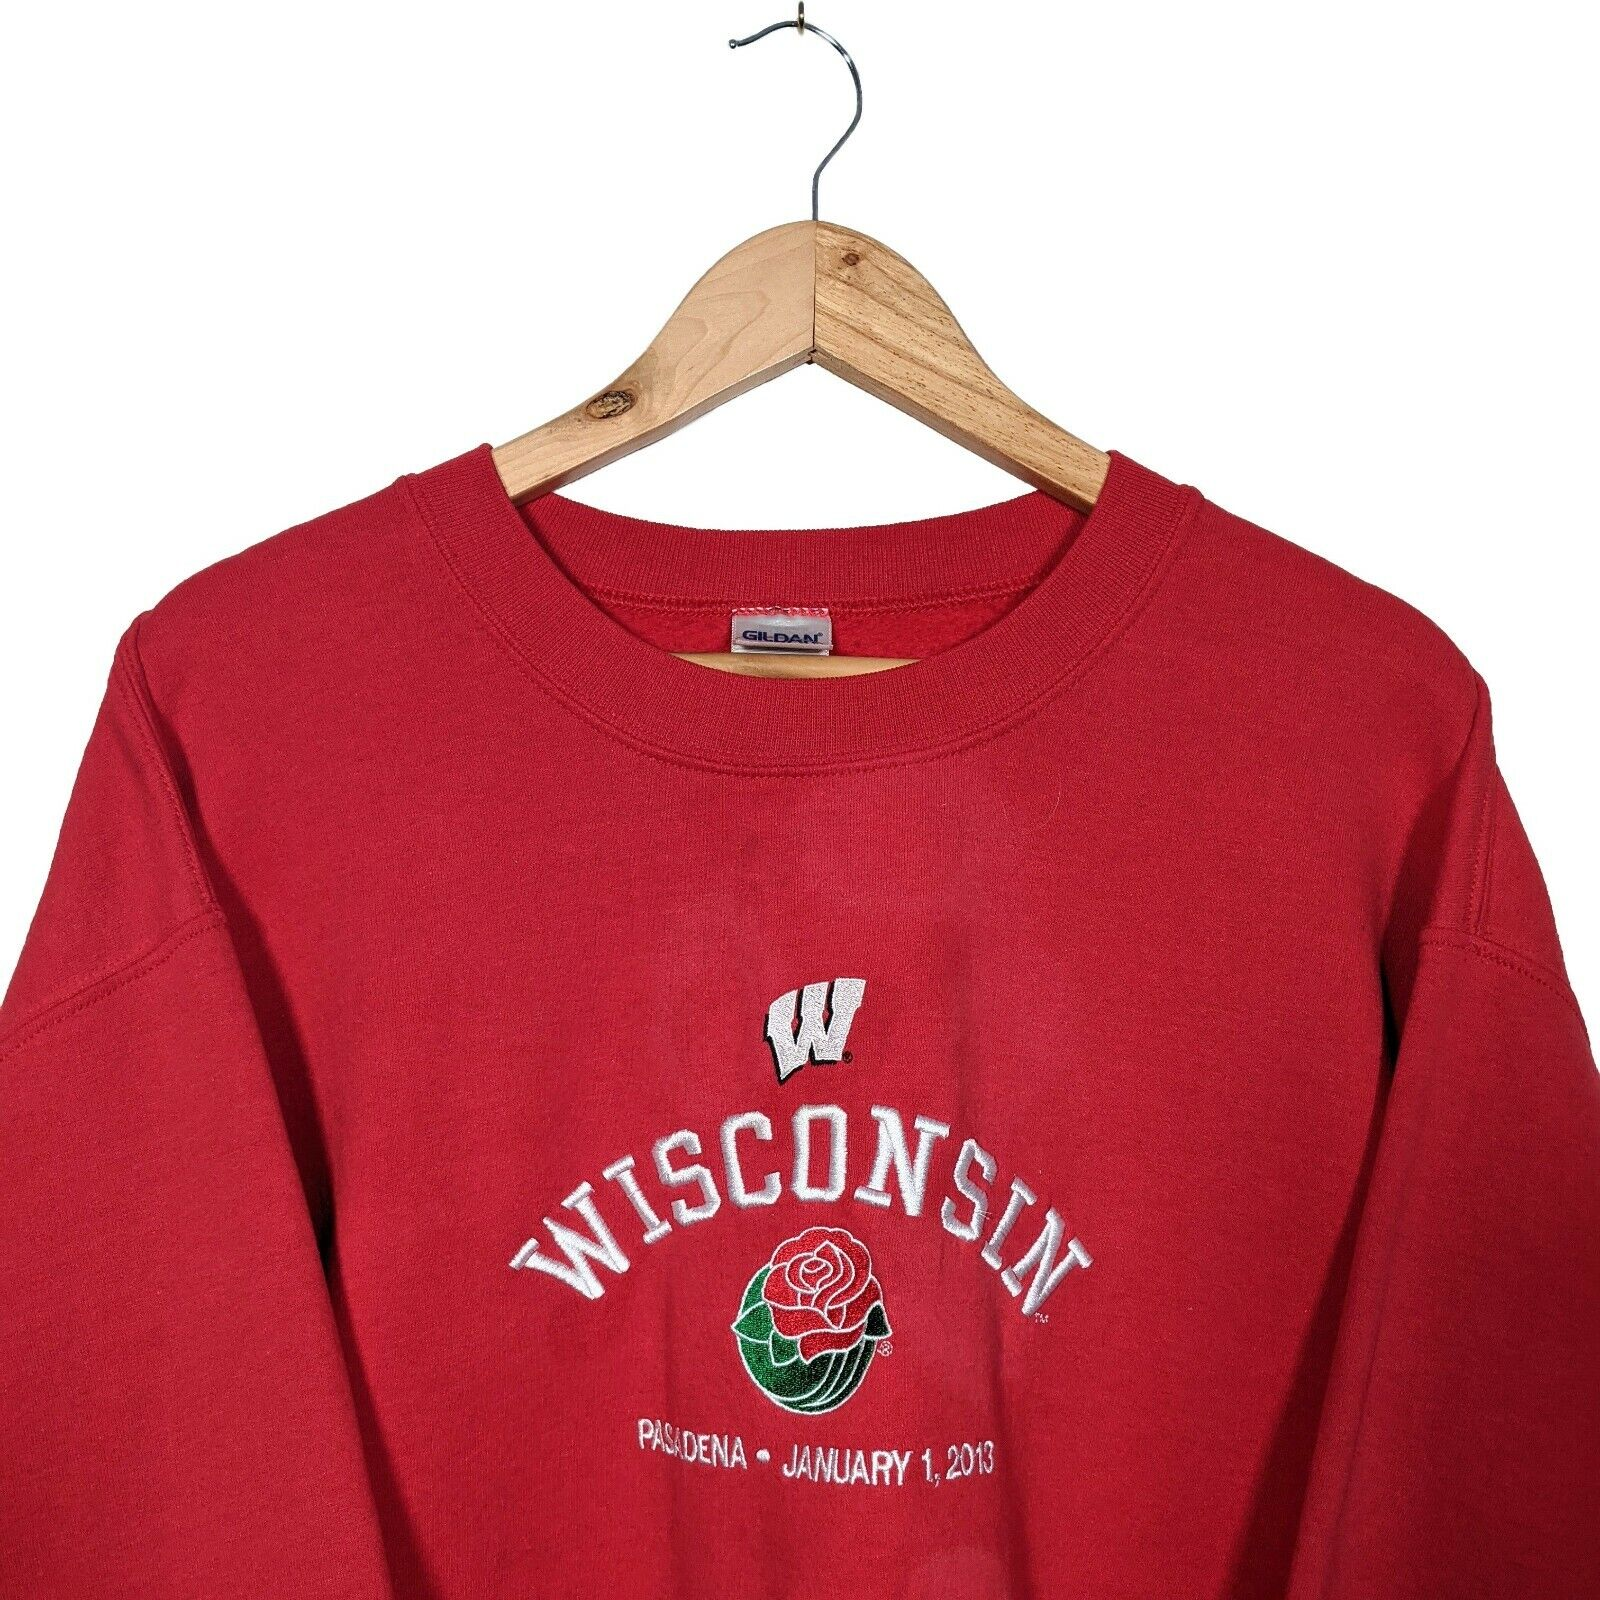 USA Wisconsin College Rosebowl 2013 Red Embroidered Sweater- Mens L